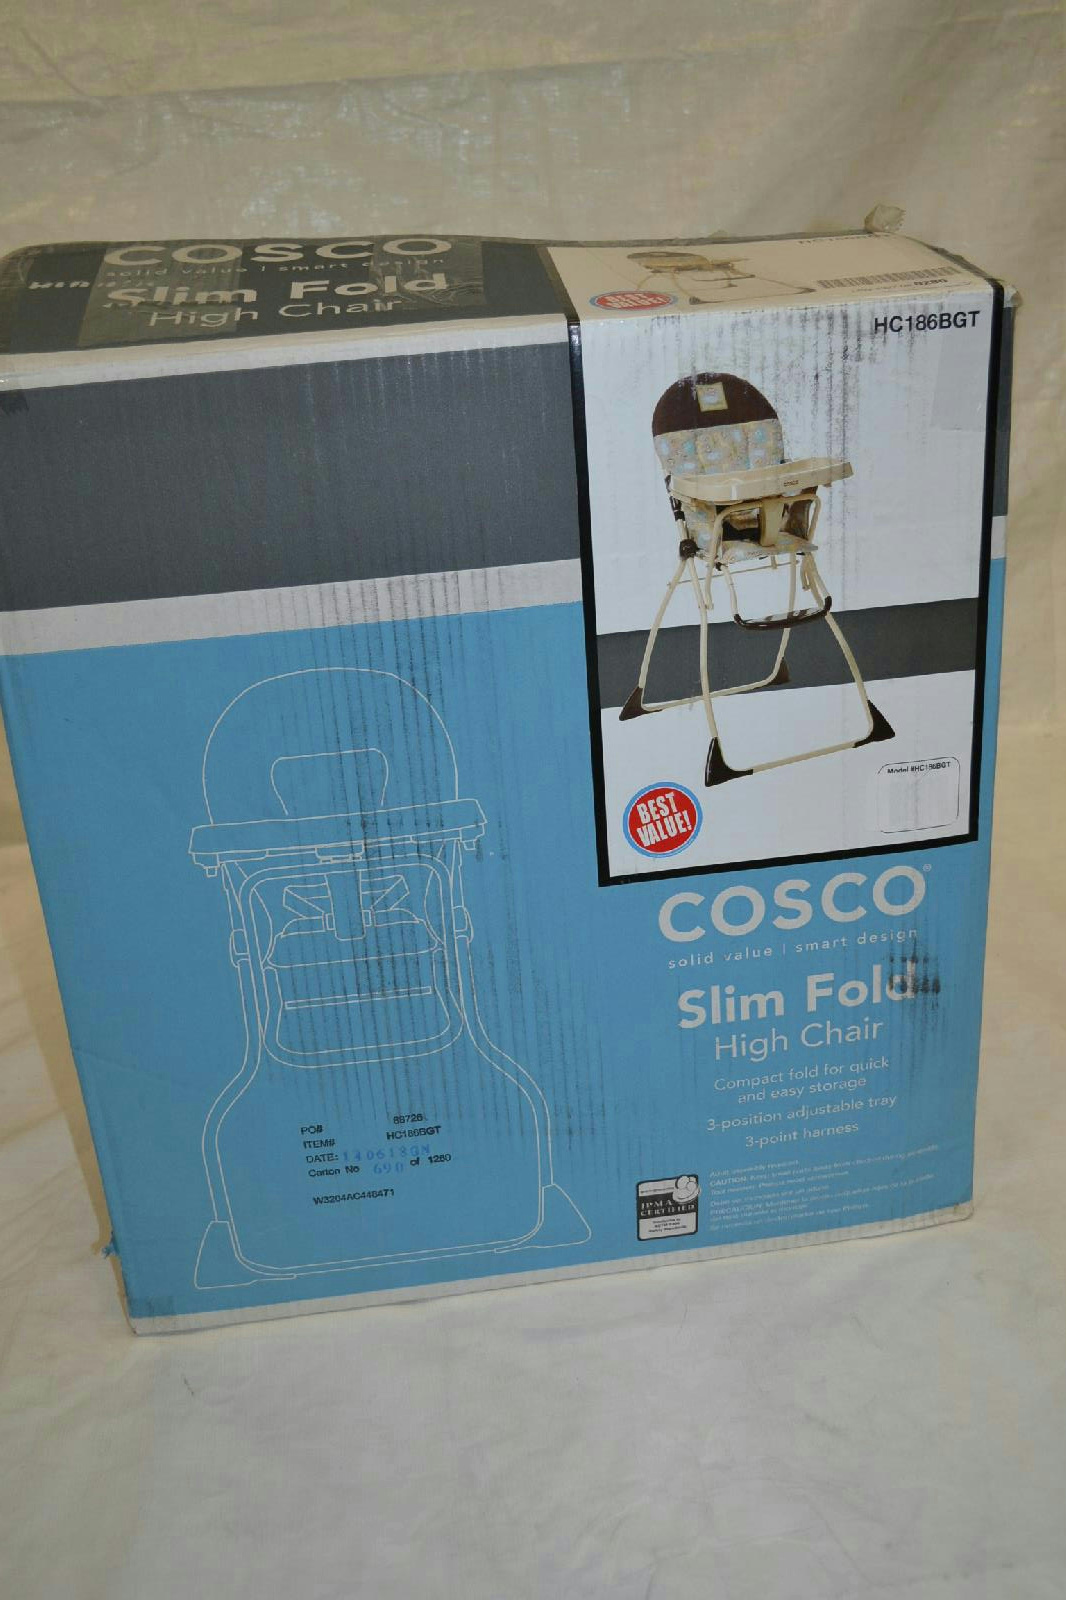 New Cosco Slim Fold High Chair With 3 Position Adjustable